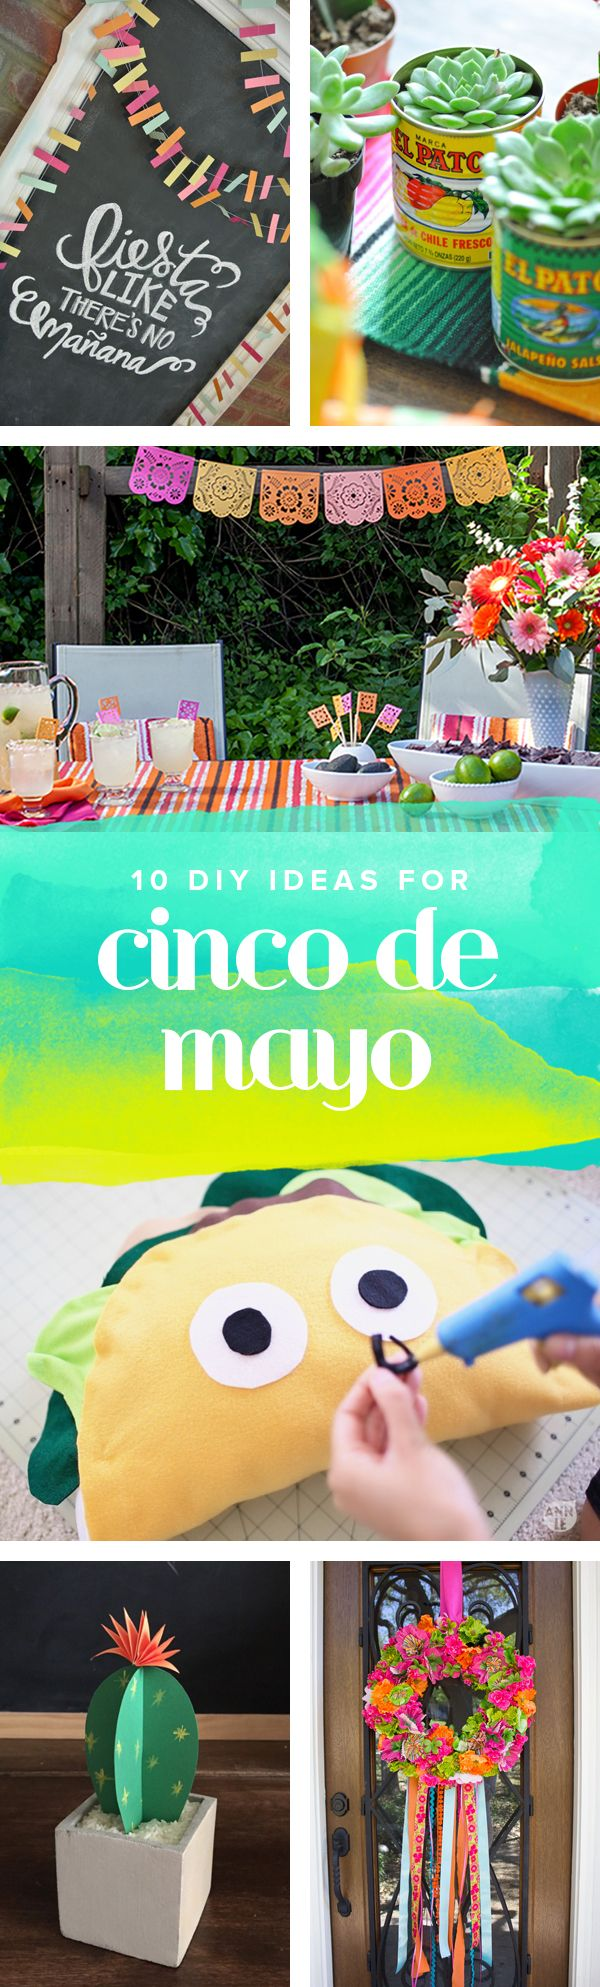 10 Cinco de Mayo decorations for your fabulous fiesta478 best DIY   CRAFTS images on Pinterest   Diy beauty  Beauty  . Fun Crafts For Your Home. Home Design Ideas